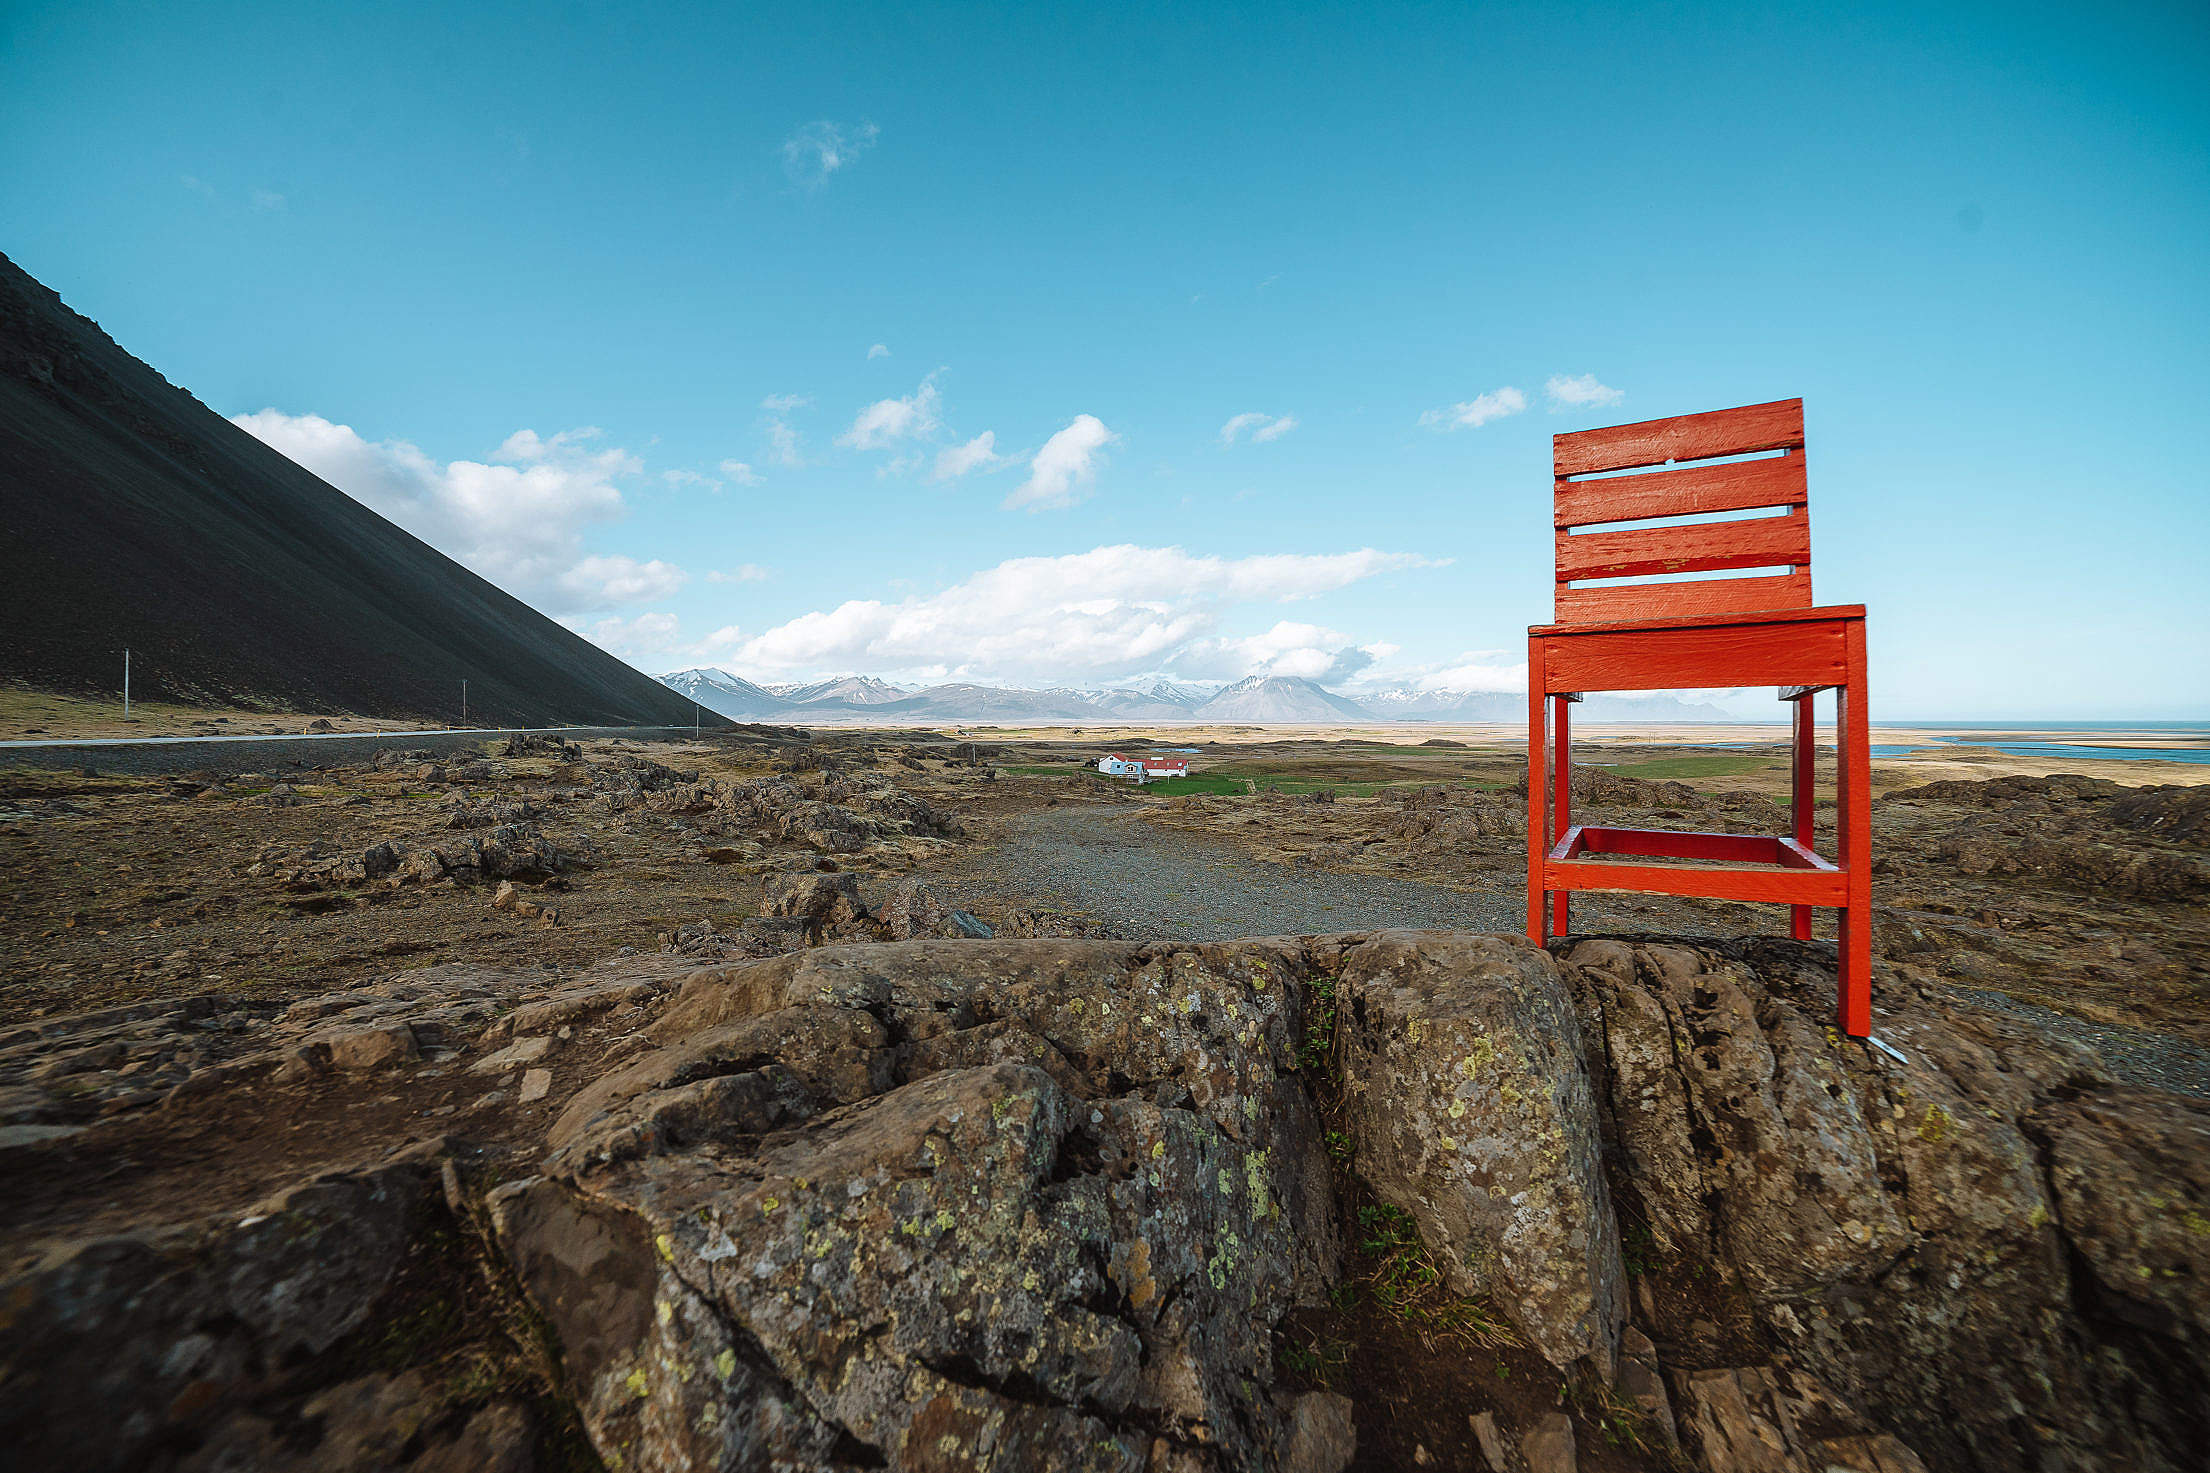 A Giant Red Chair Bolted to a Rock in Iceland Free Stock Photo